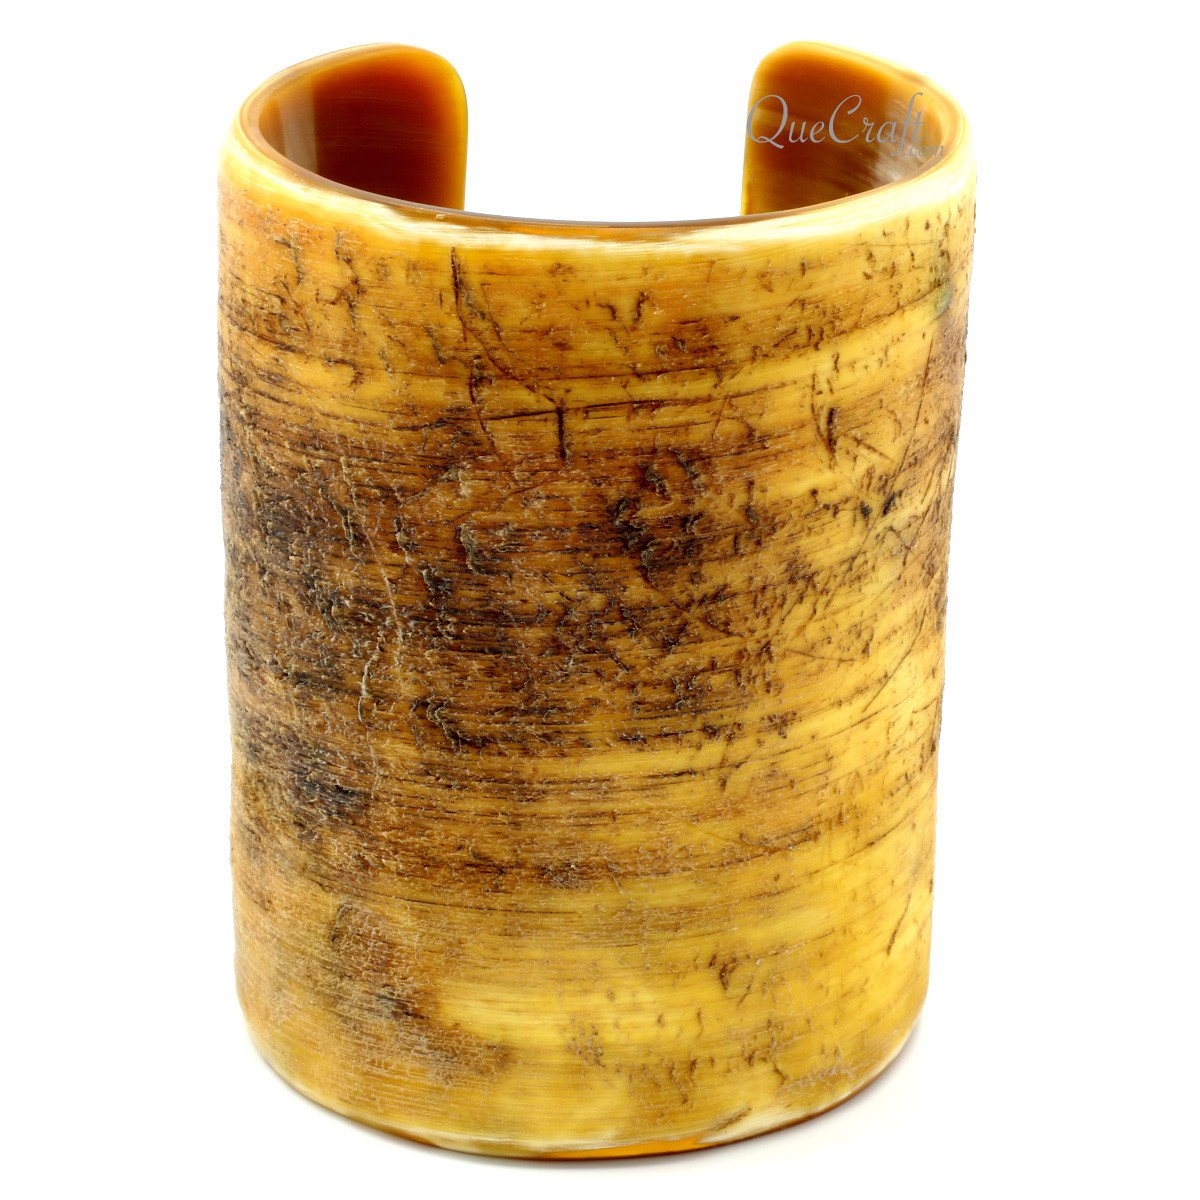 Horn Cuff Bracelet #11661 - HORN.JEWELRY by QueCraft